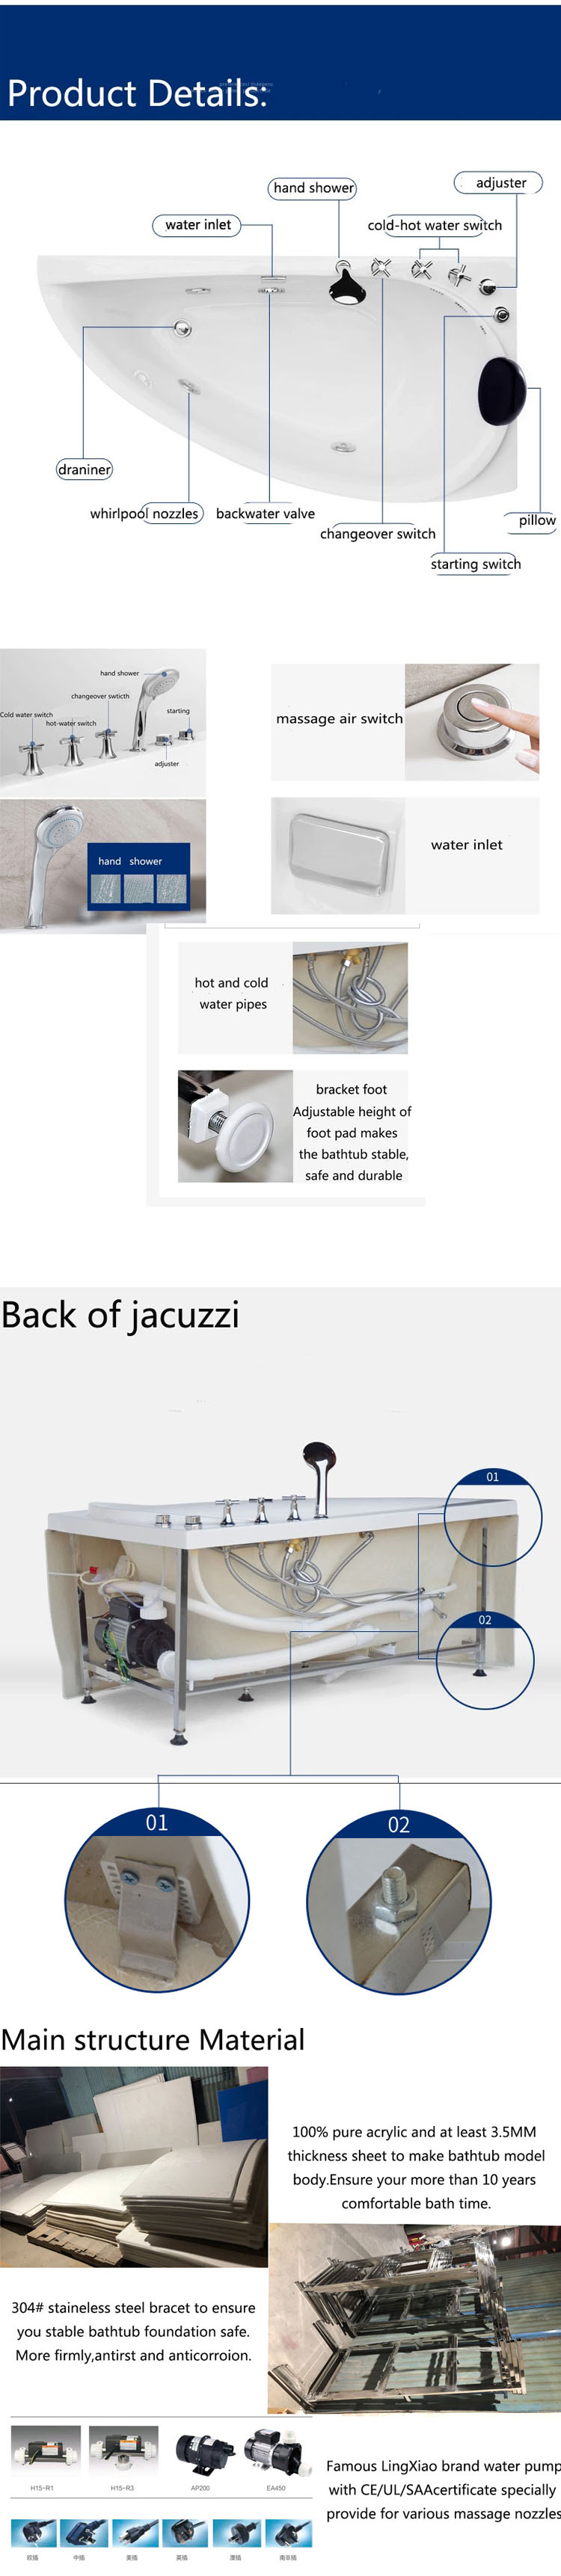 AO-6097  bathtub size 1.8x1.2m Chinese whirlpool spa hot hydromassage jetted bathtub with jakuzzy function